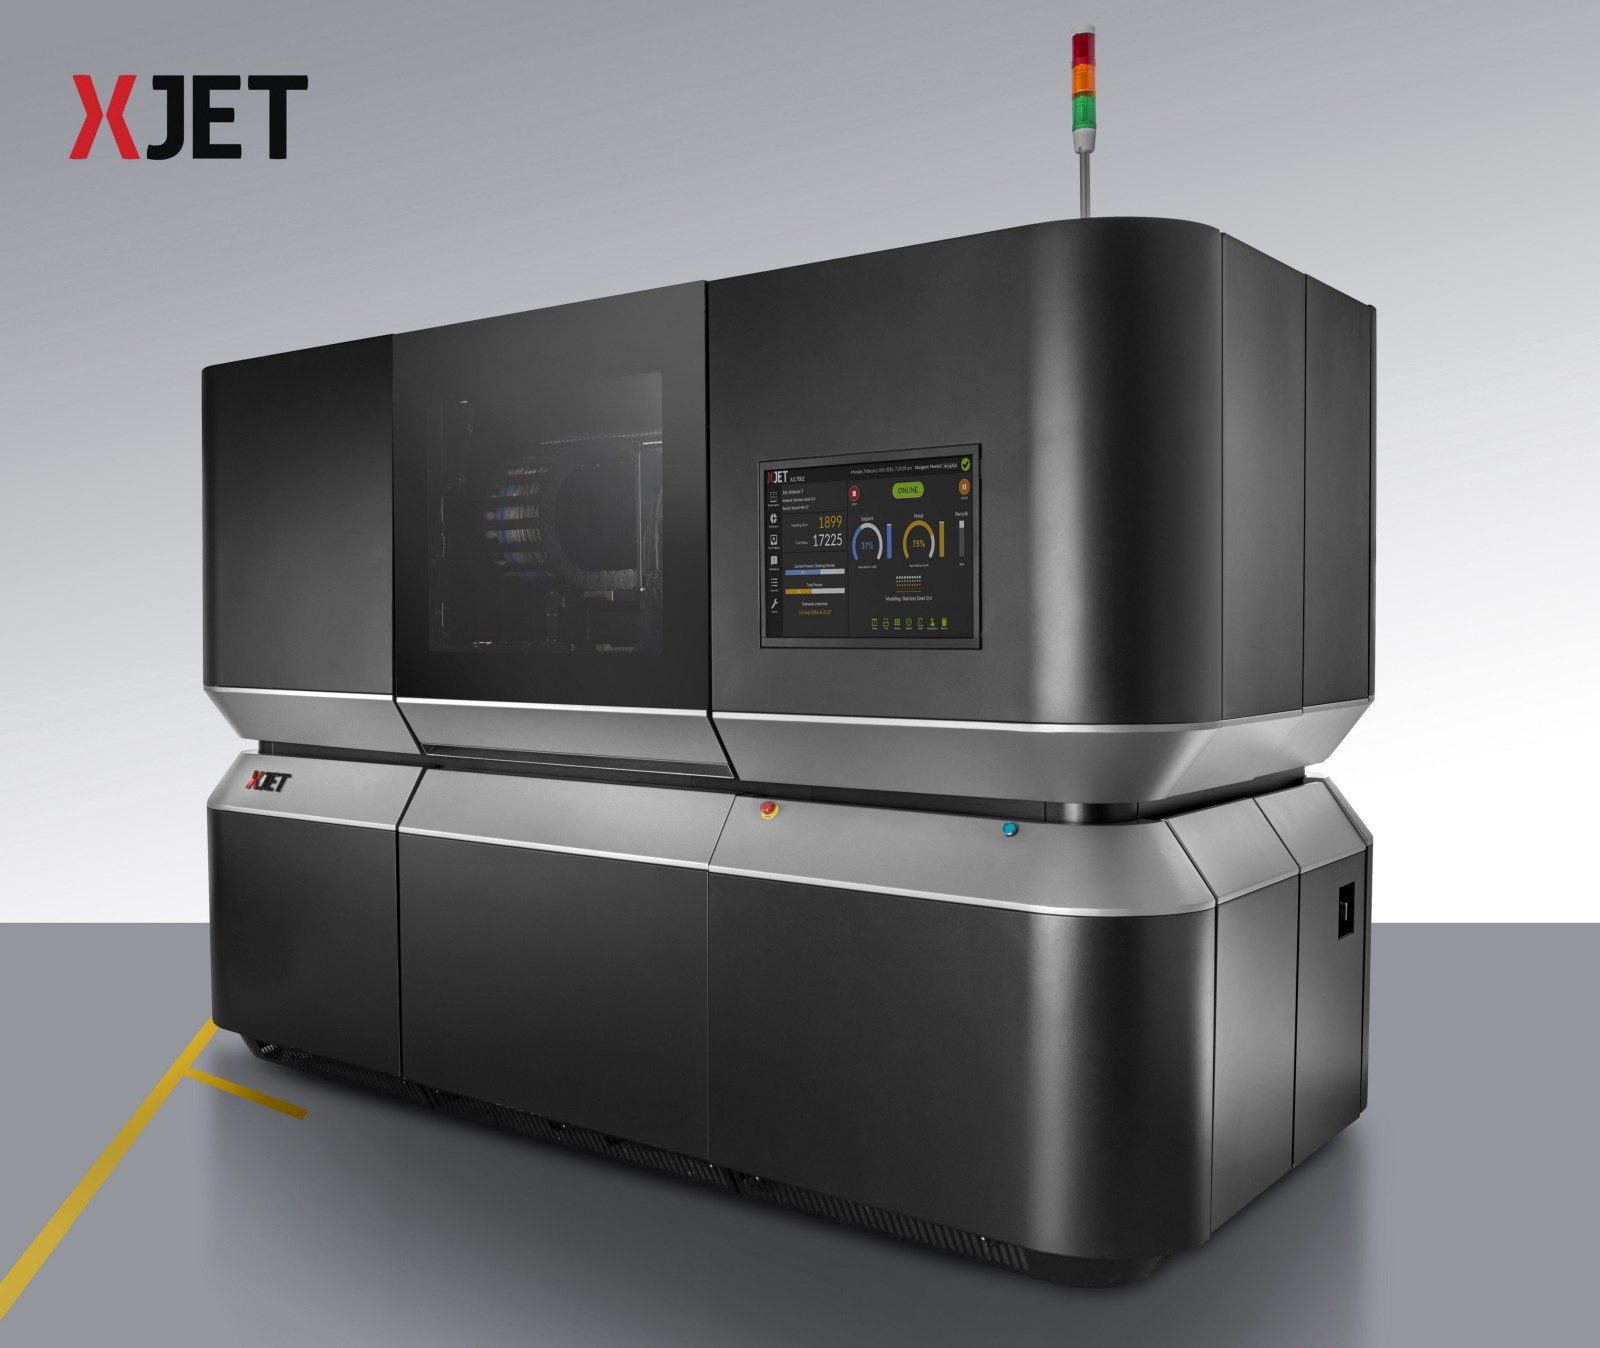 3 Additive Manufacturing Technologies To Watch Out For In 2017